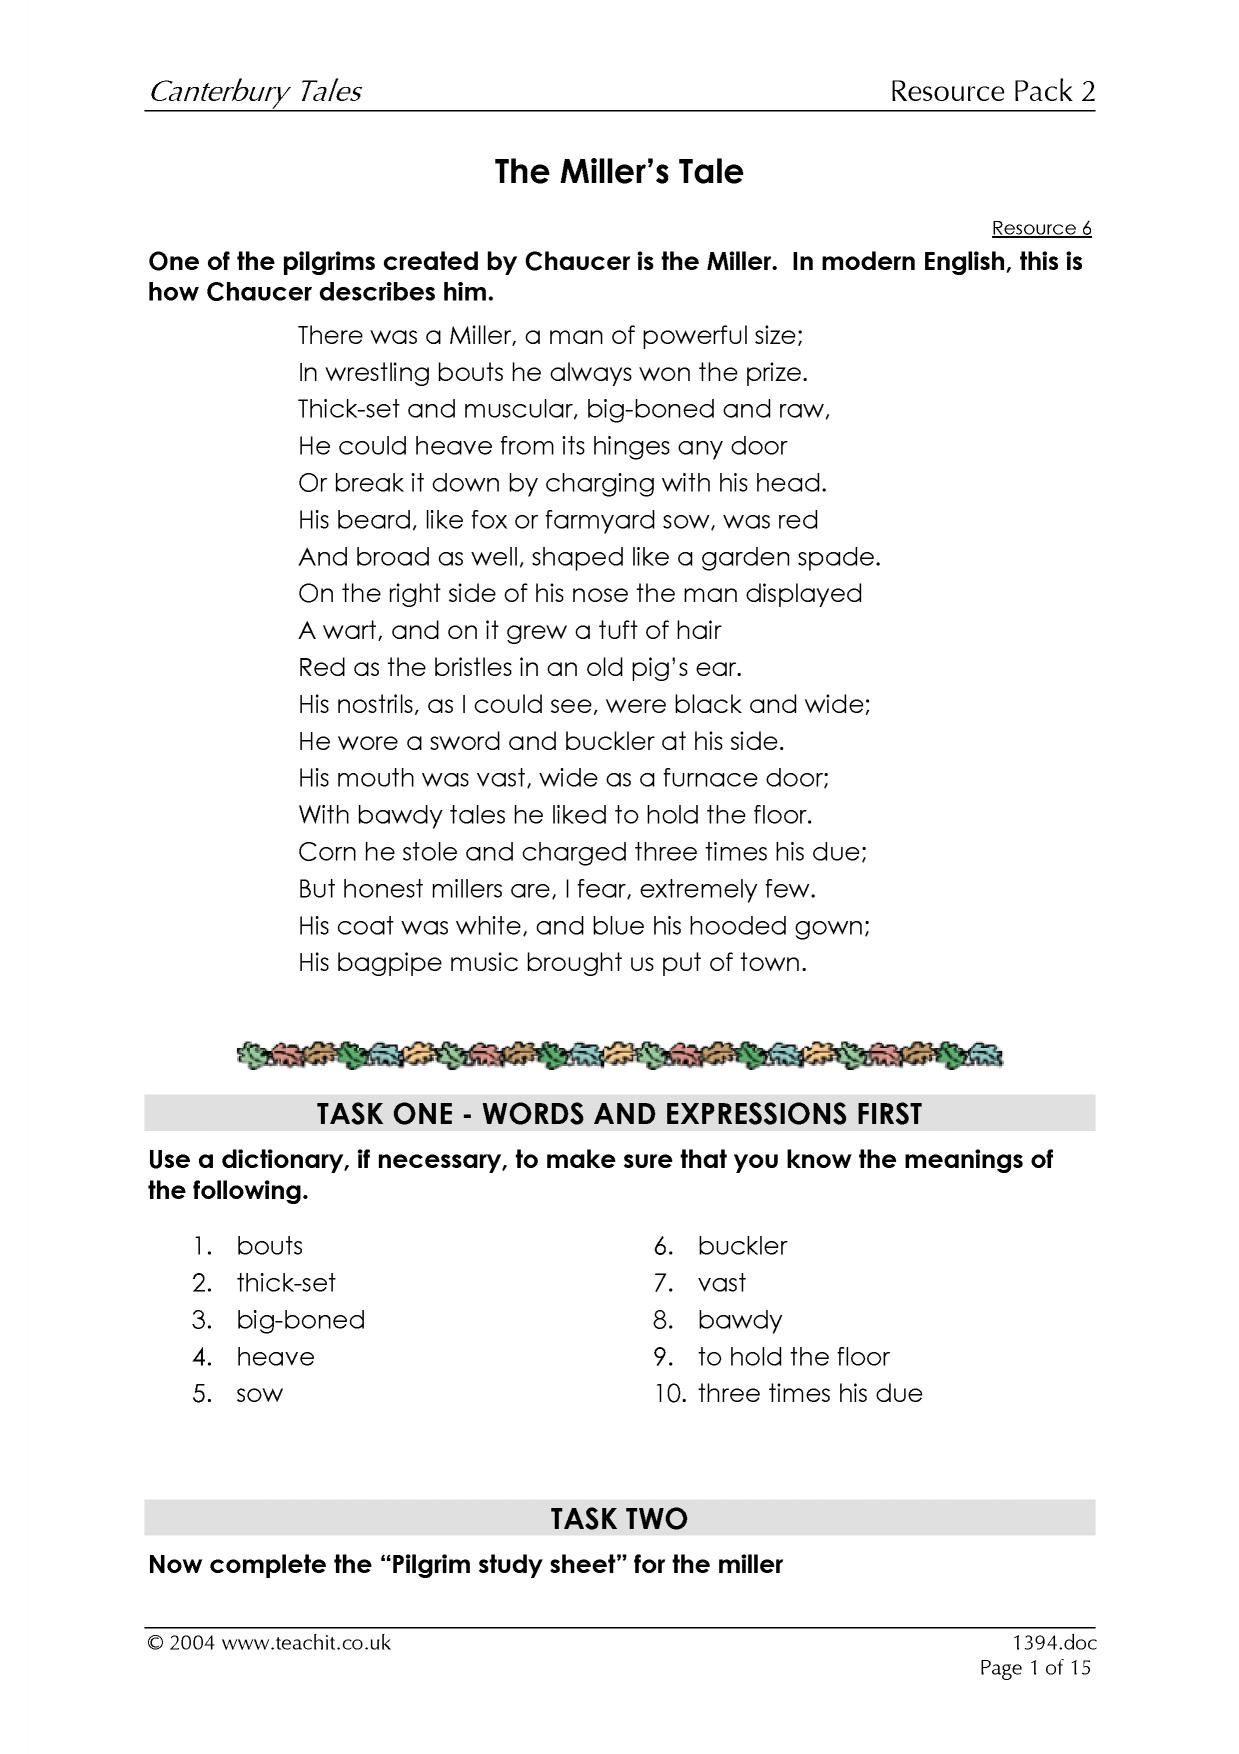 Canterbury Tales Prologue Worksheet Answers